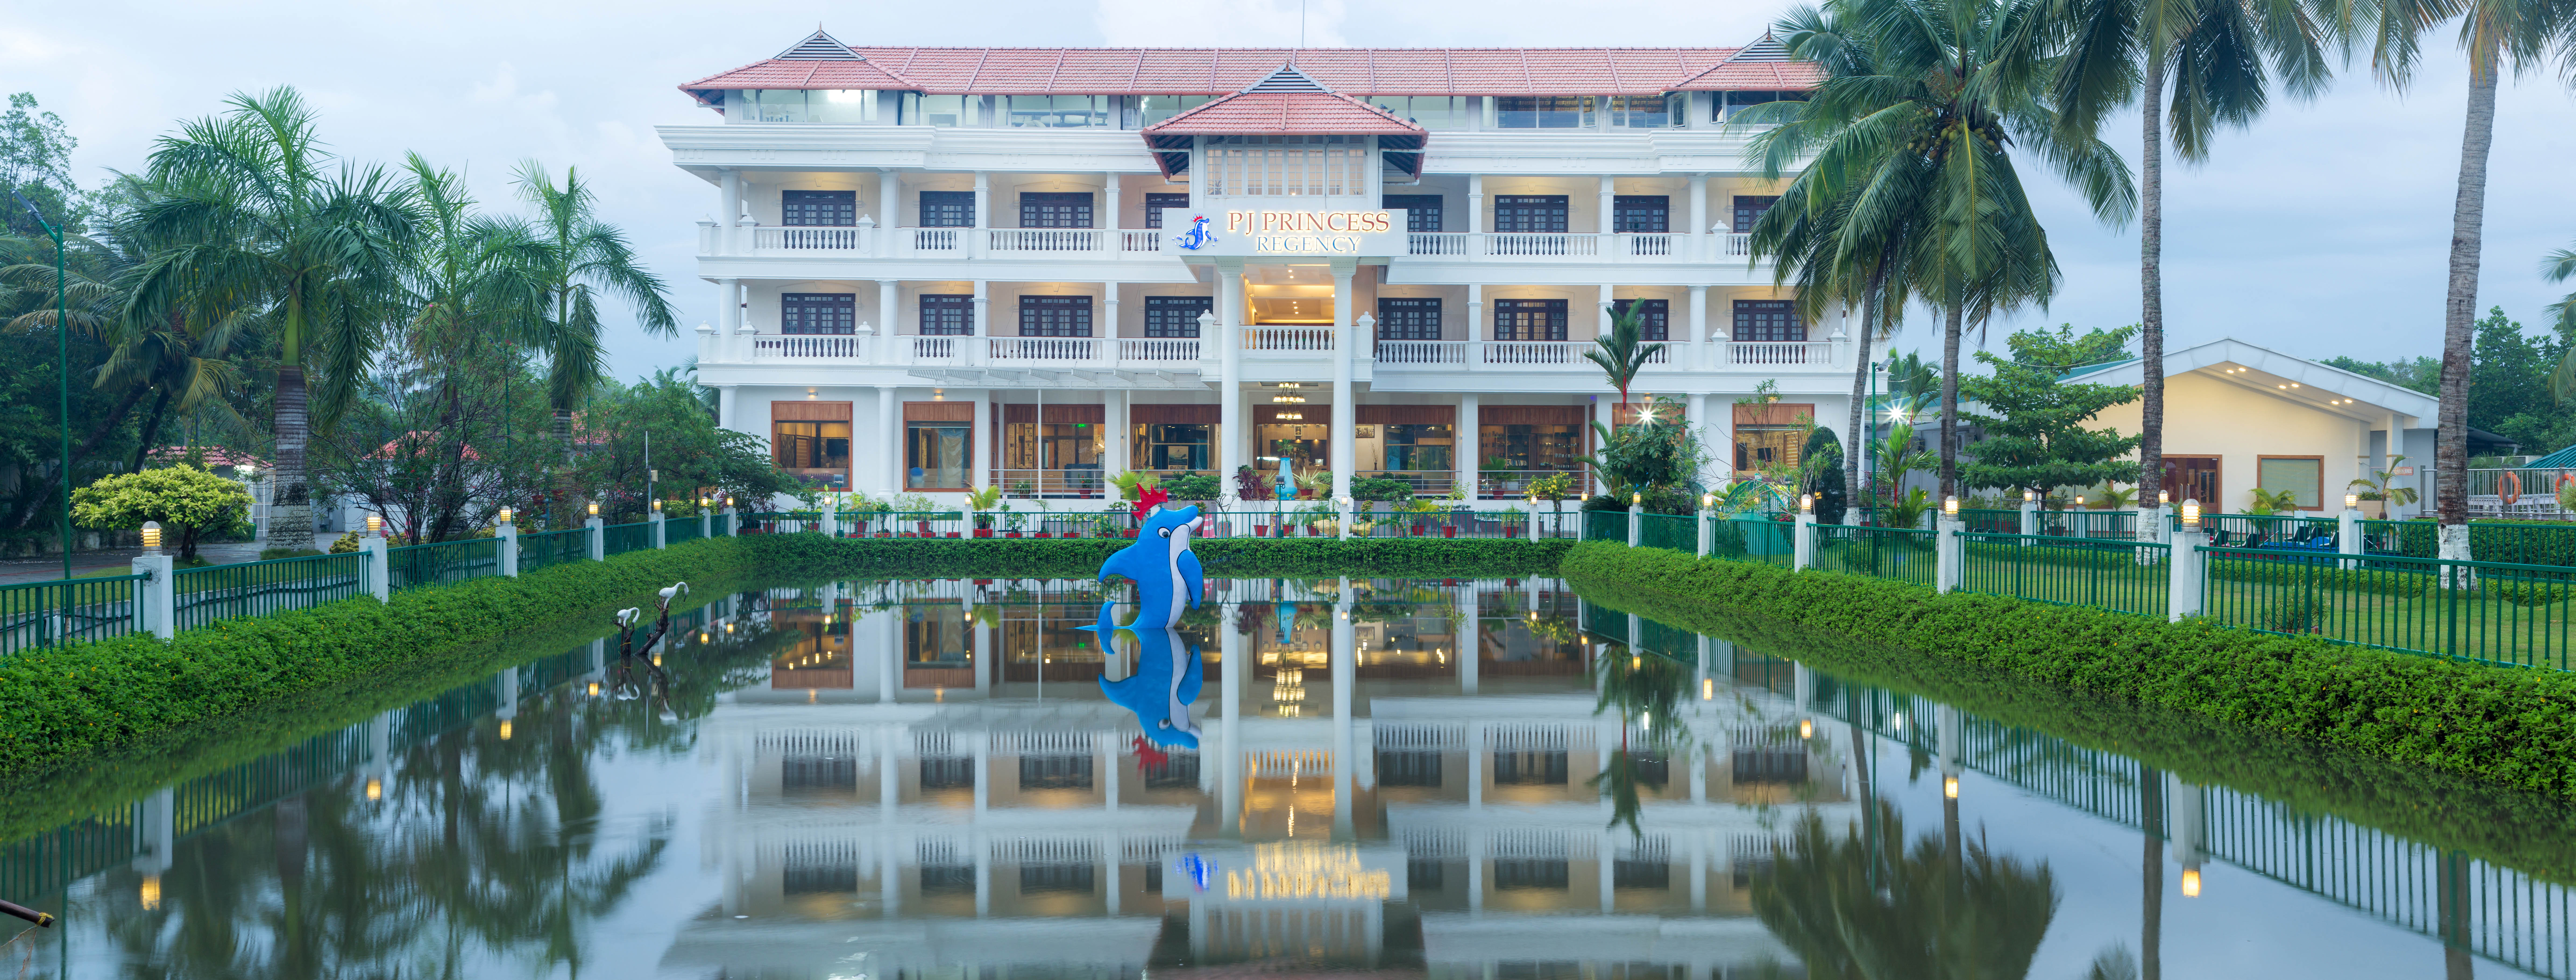 Large Photograph of PJ PRINCESS REGENCY located in Cochin